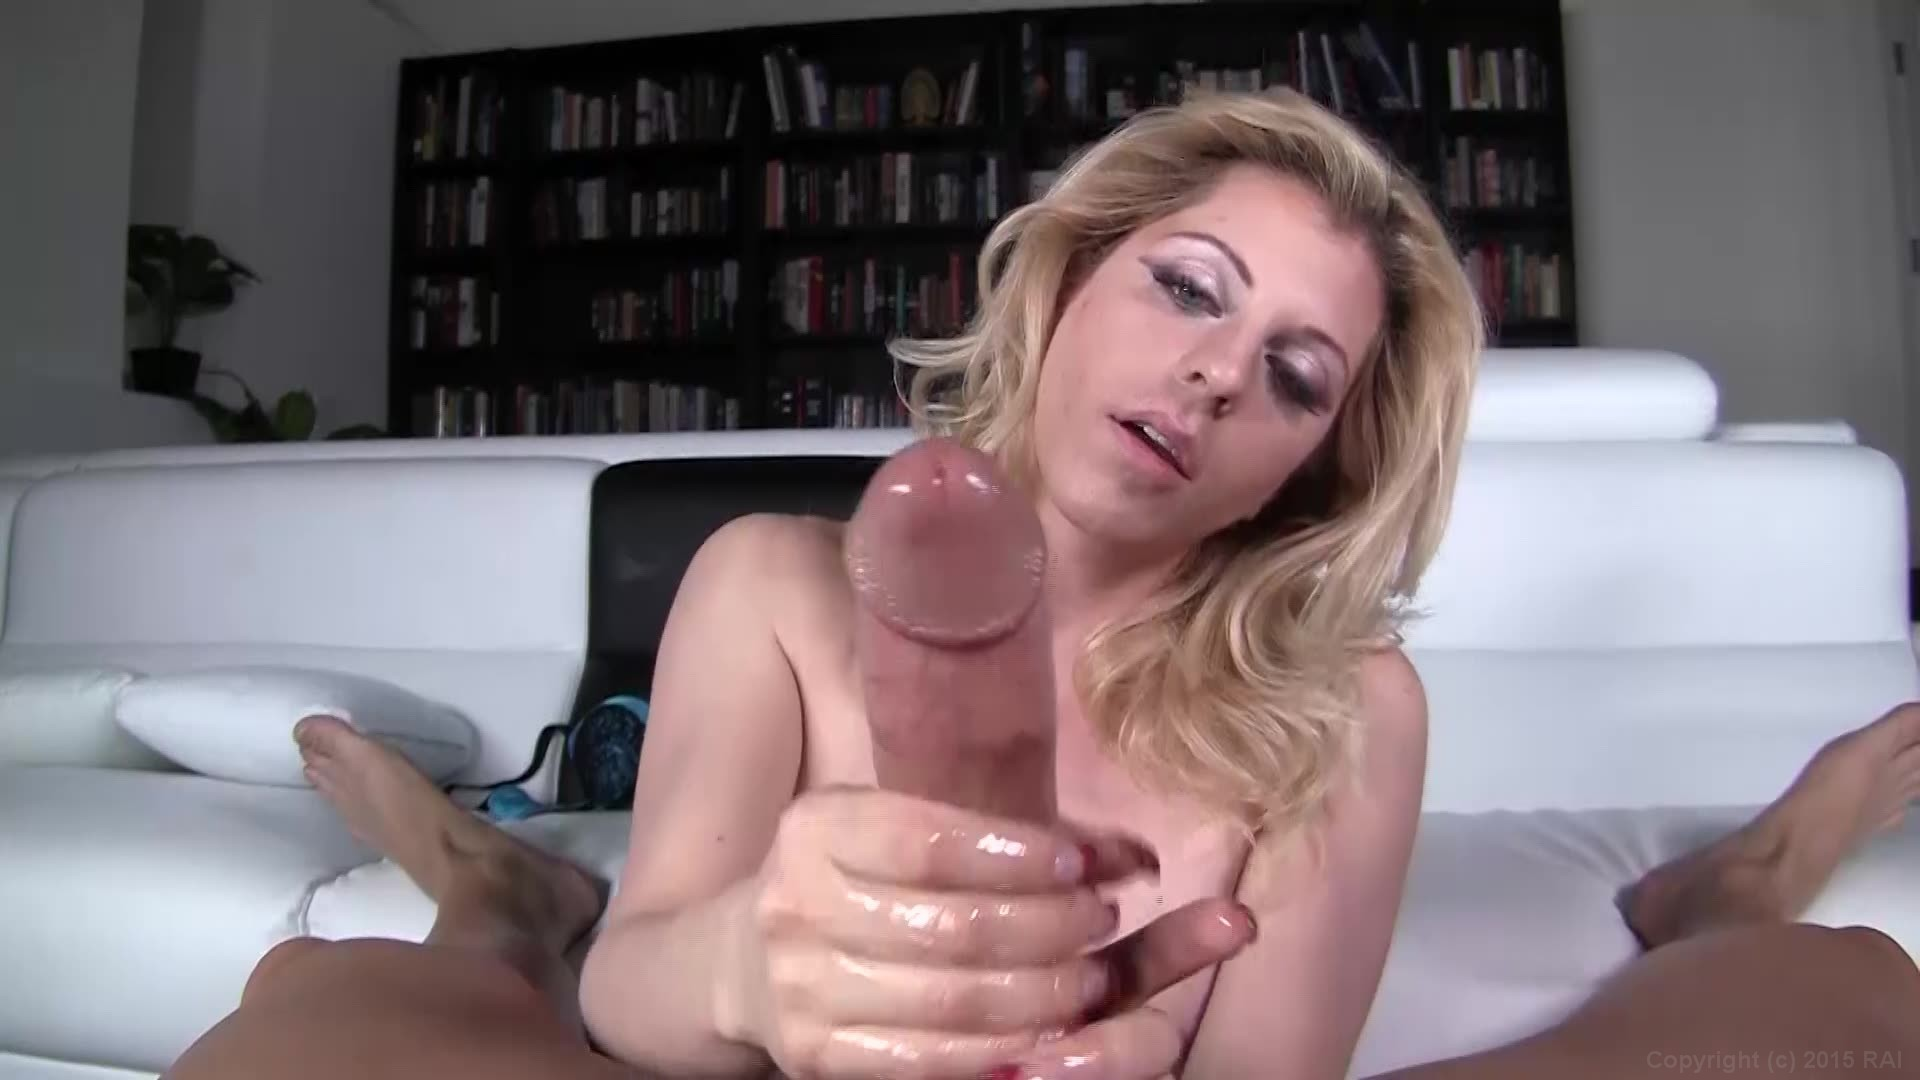 handies handjobs - Free Video Preview image 2 from Tranny Handies